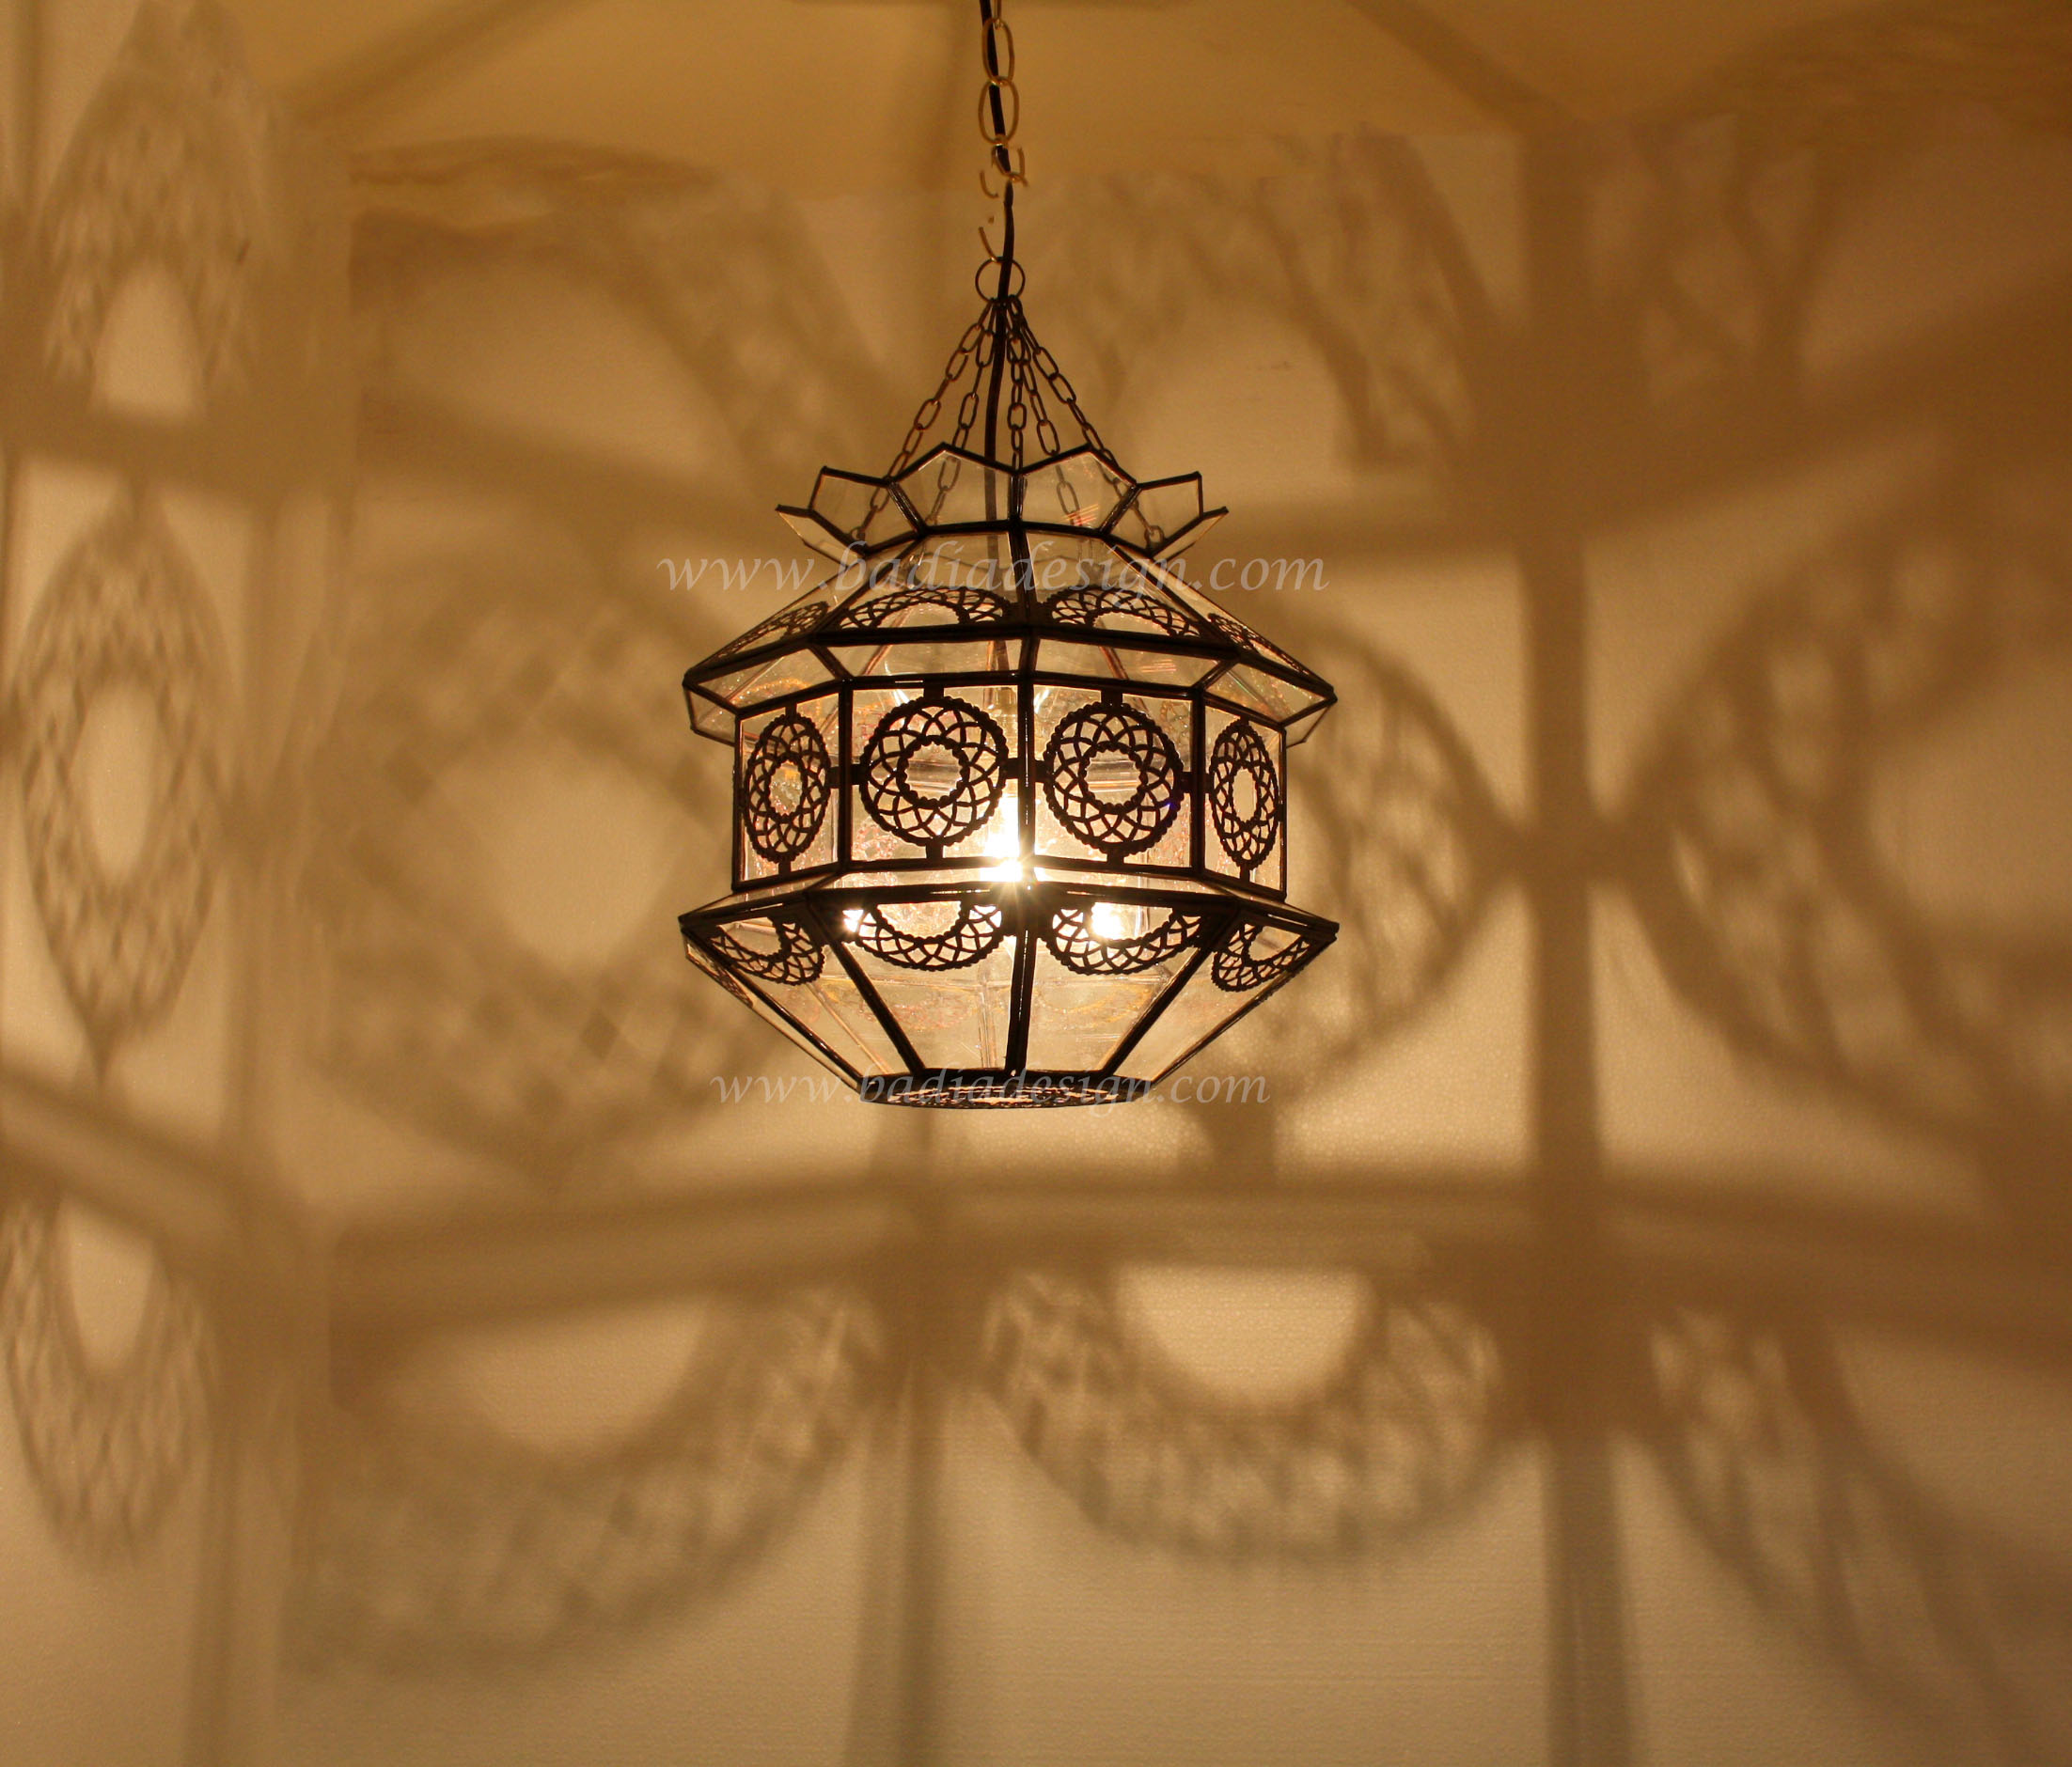 moroccan-lighting-colorado-springs.jpg